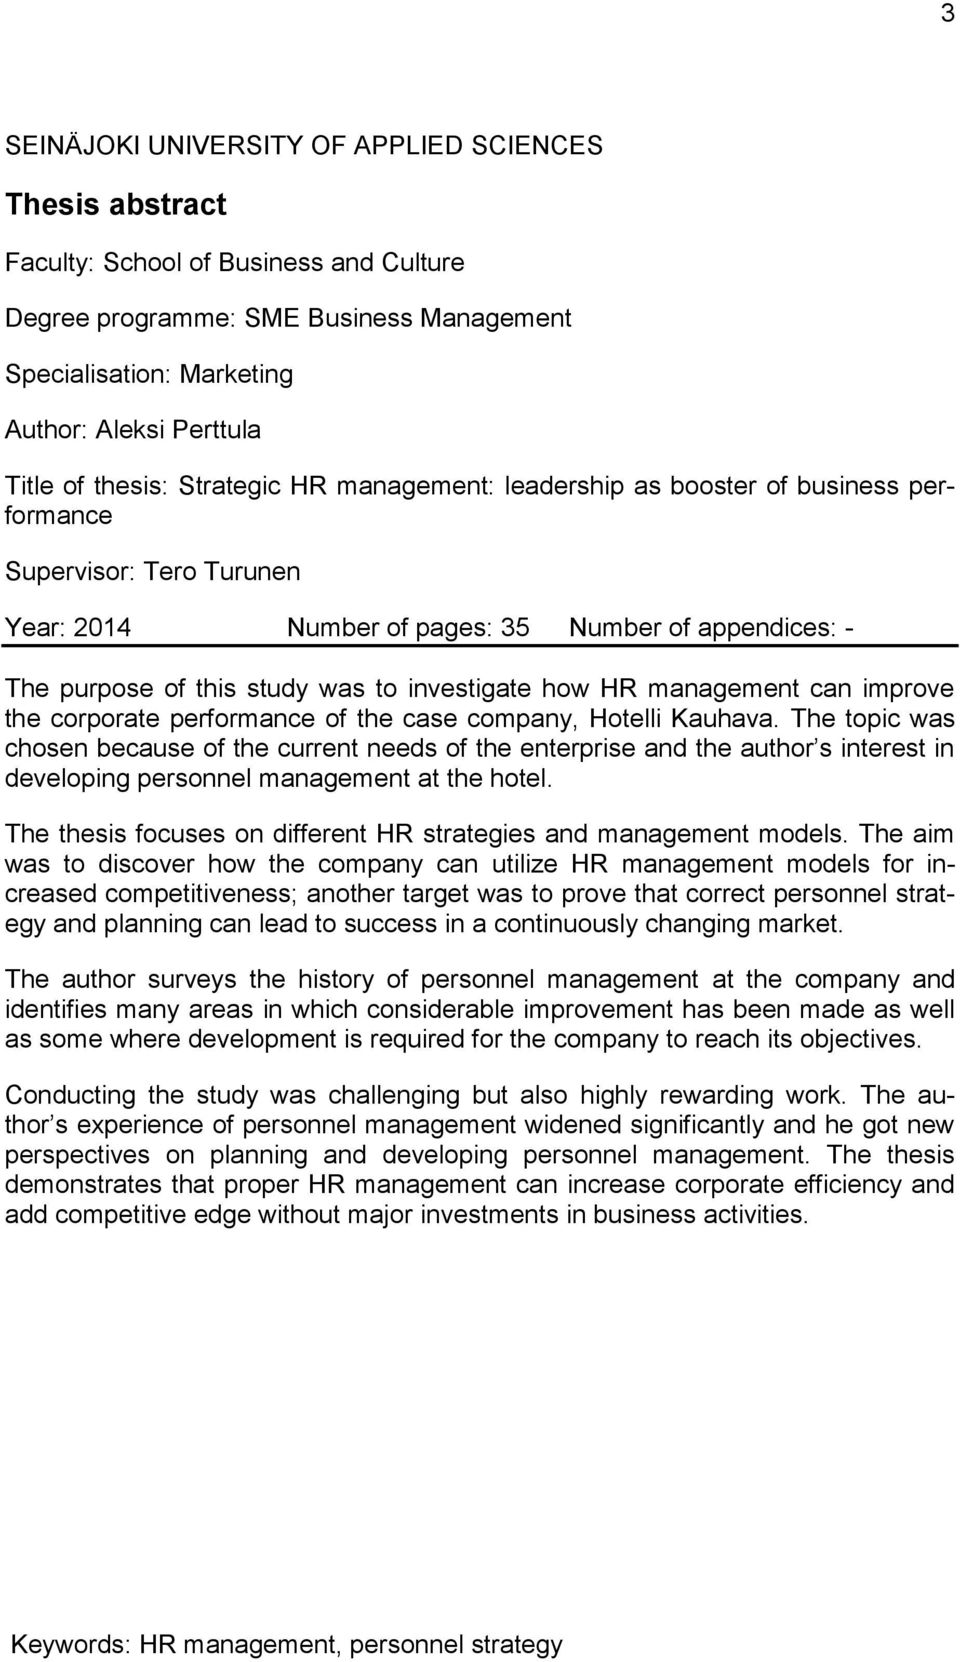 investigate how HR management can improve the corporate performance of the case company, Hotelli Kauhava.